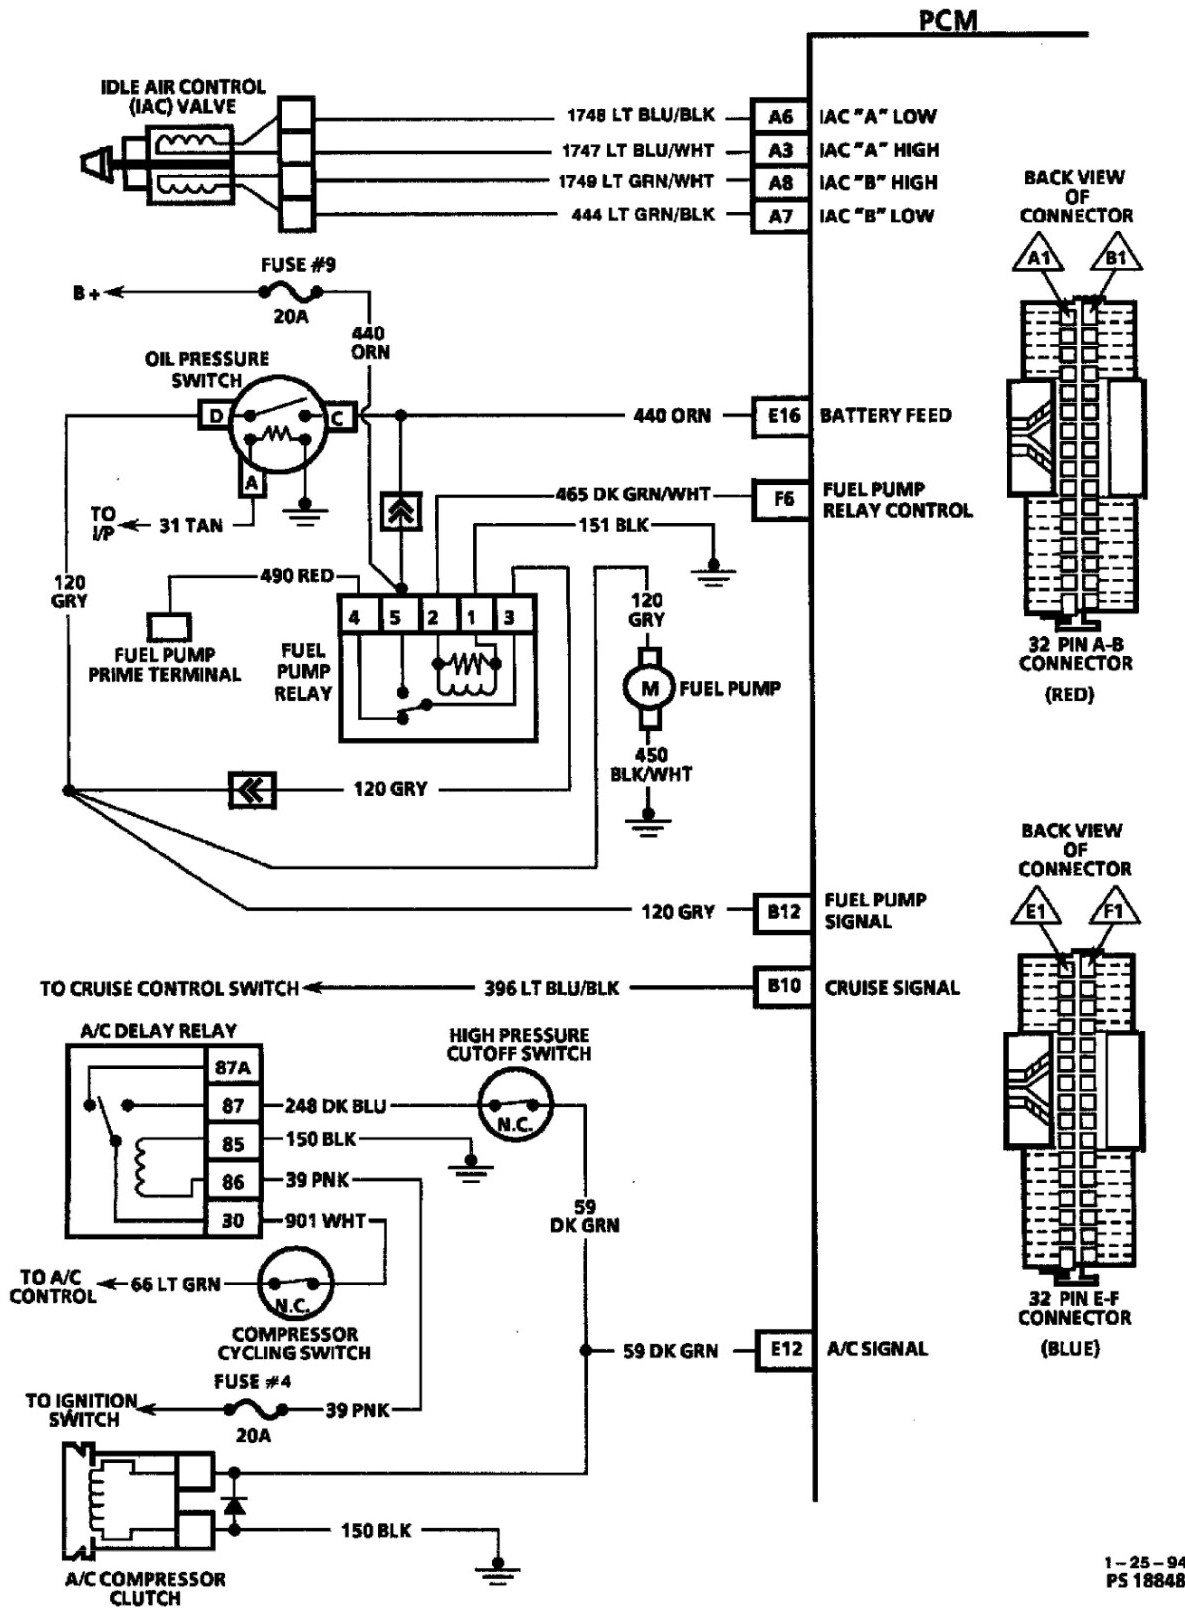 blazer relay wiring diagram online schematic diagram u2022 rh holyoak co 1995 chevy blazer starter wiring diagram